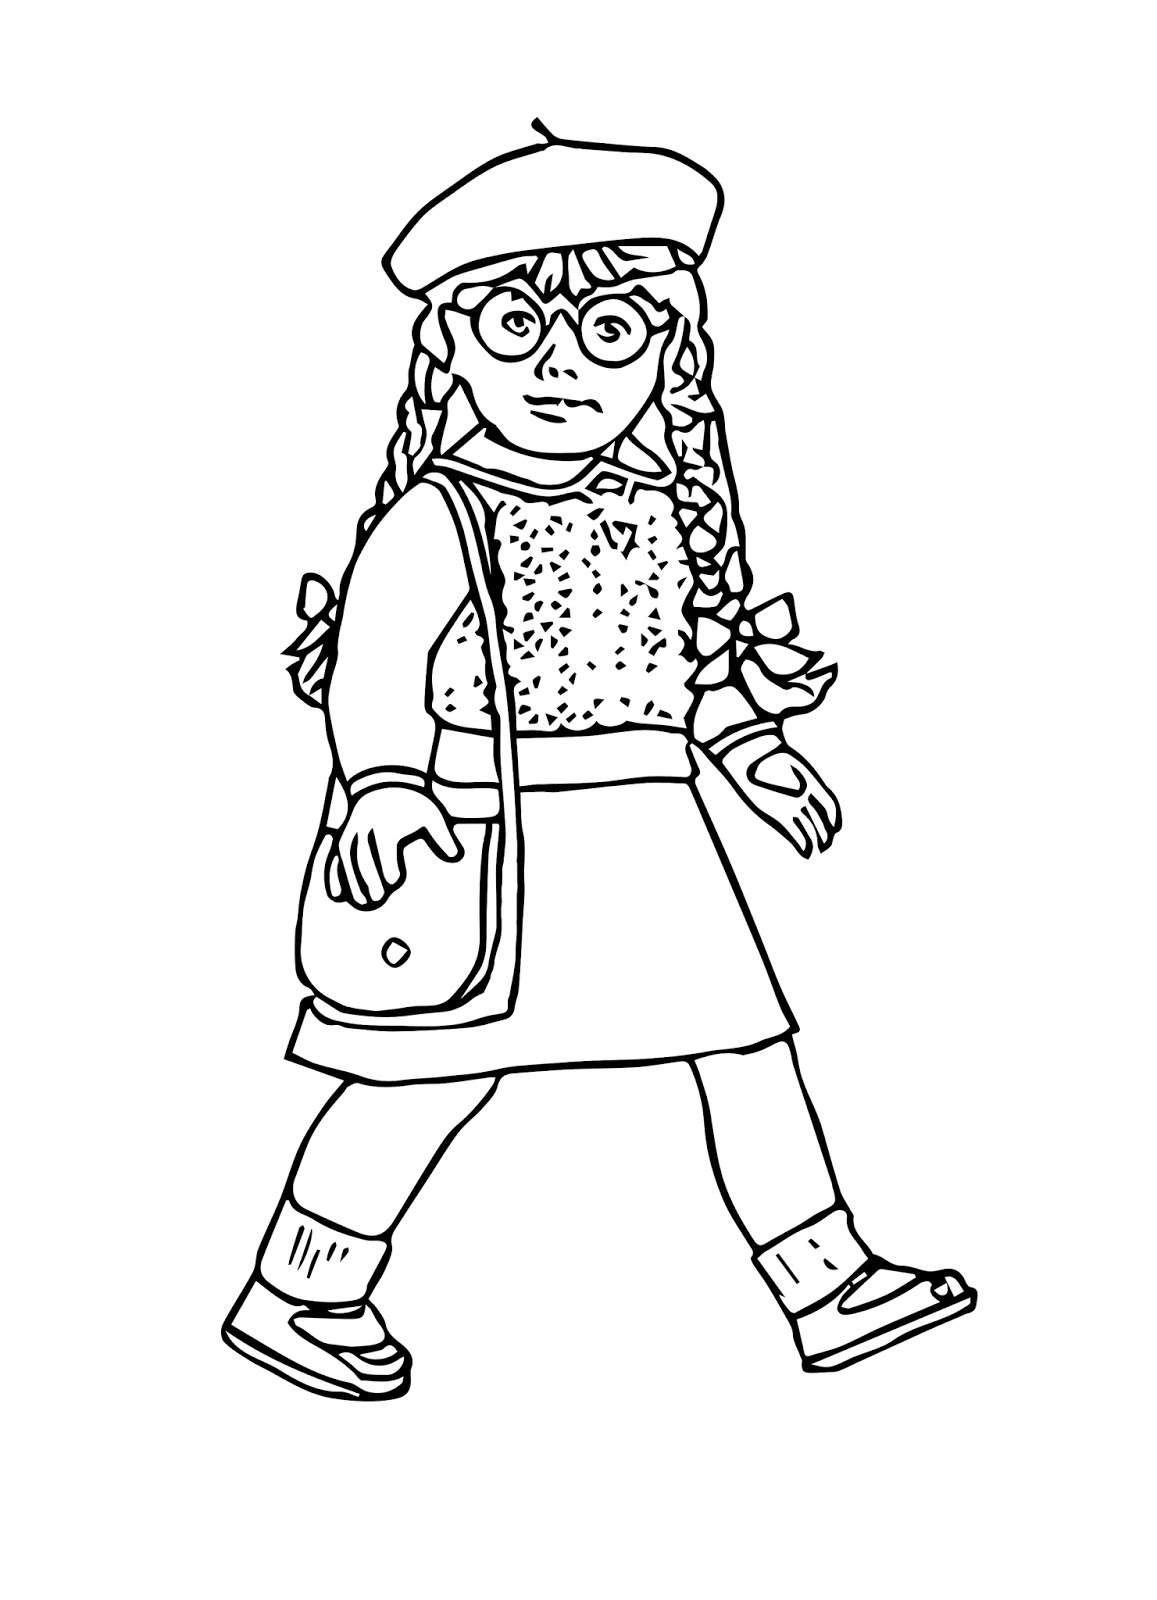 american girl doll coloring pages to print american girl coloring pages best coloring pages for kids american girl pages coloring to print doll